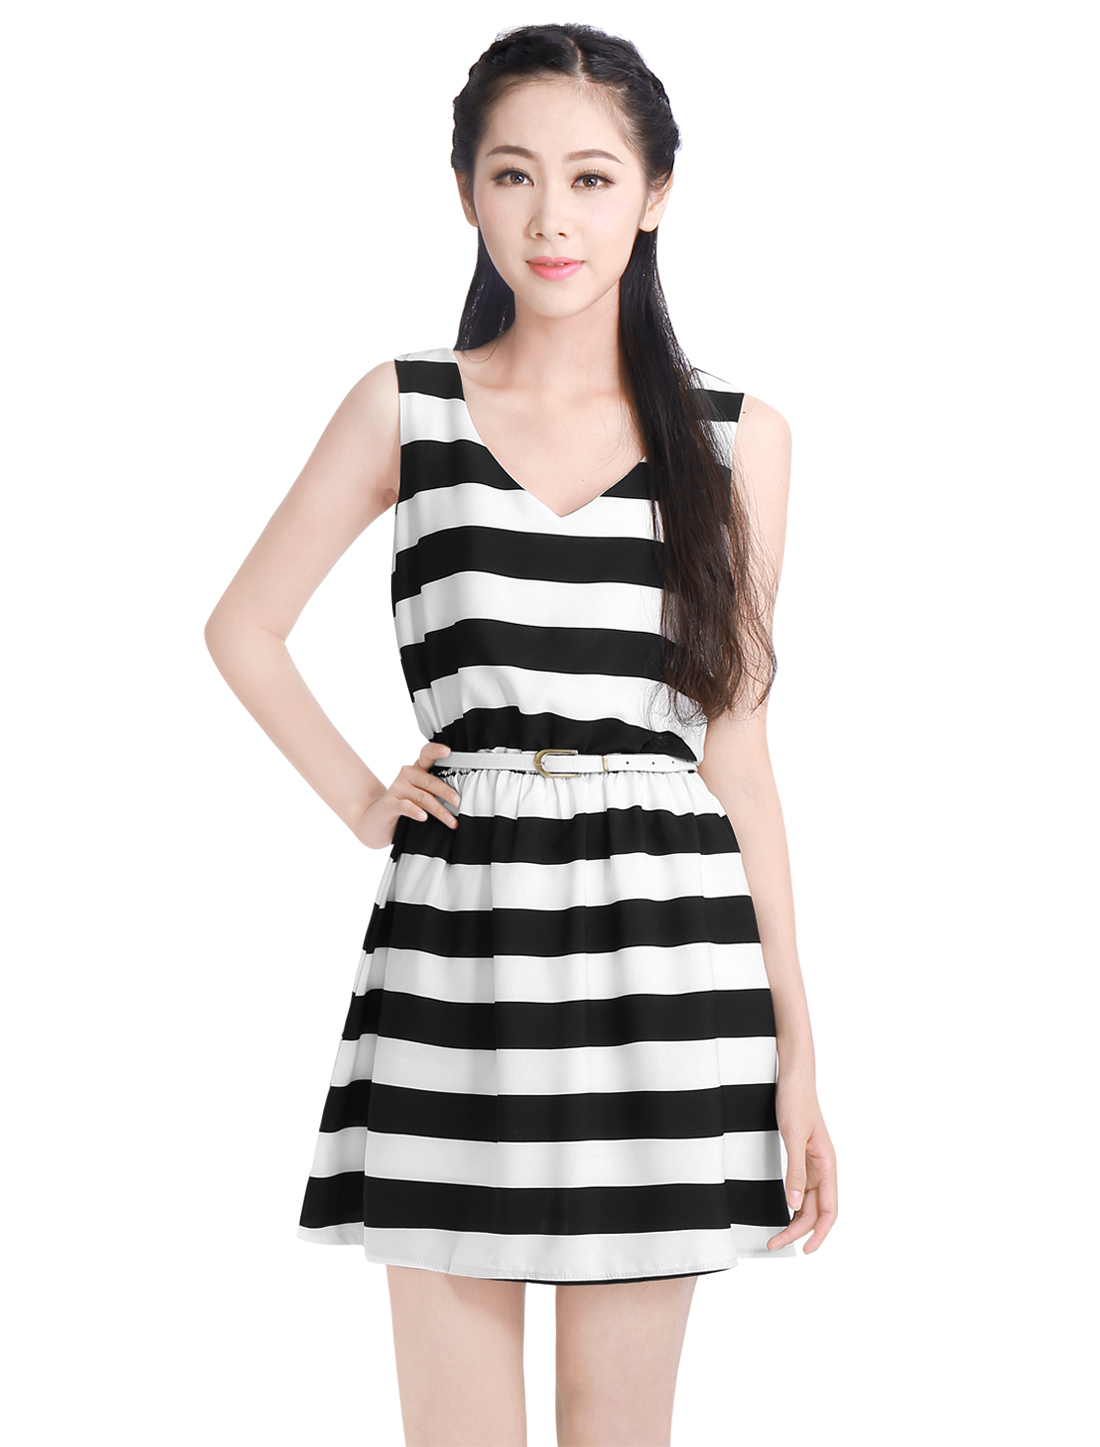 Women Black White Stripes Pattern A-Line Mini Dress w Belt L